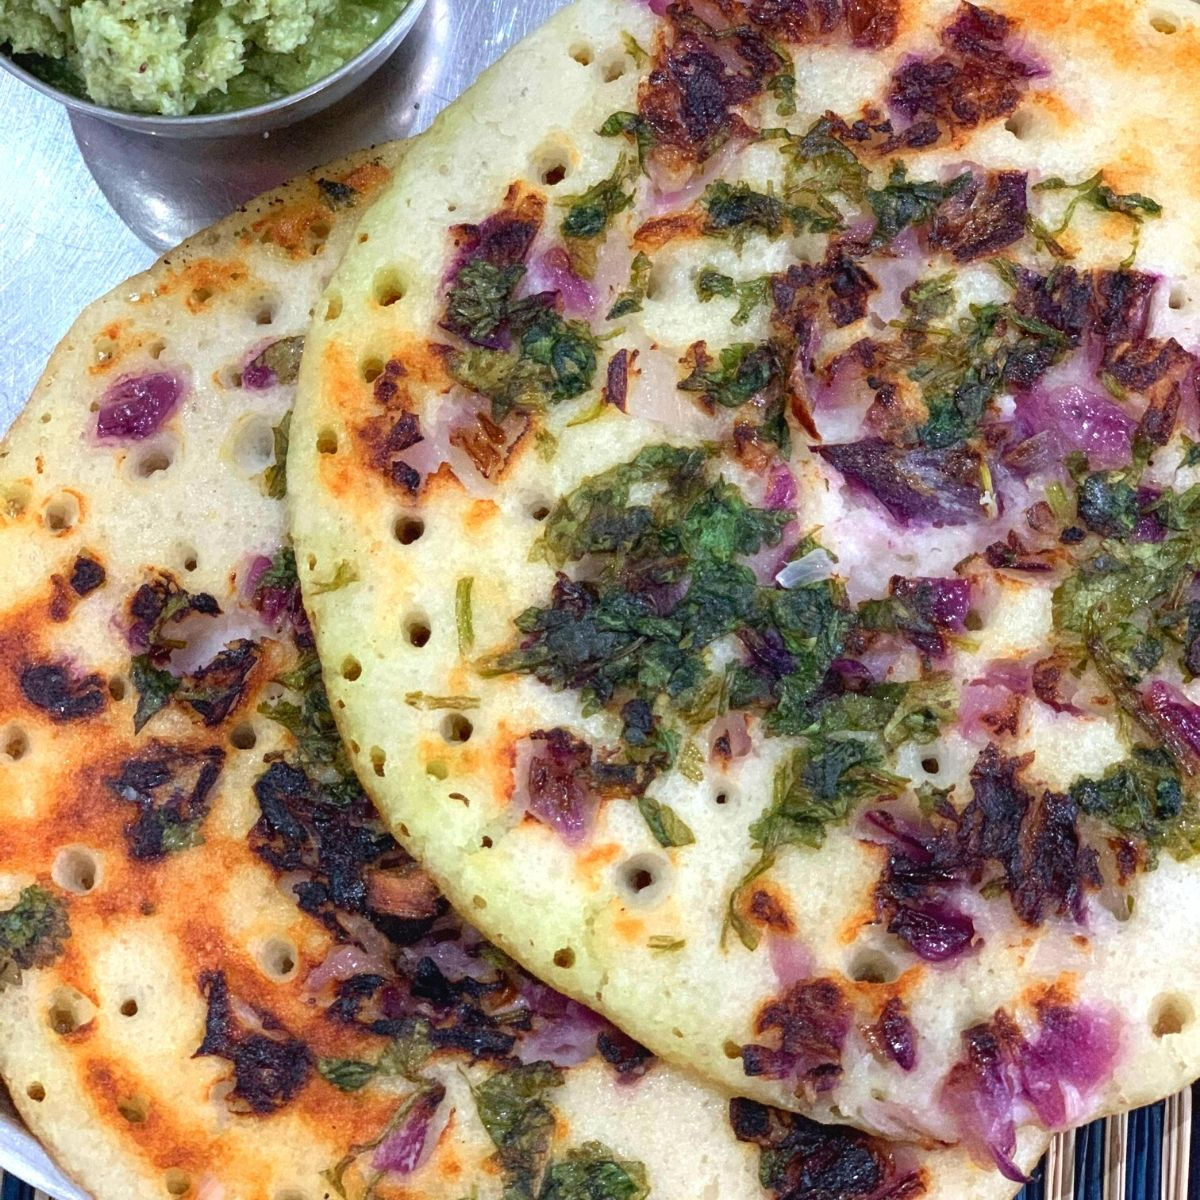 Onion Uttapam is an easy South Indian Breakfast Recipe or savoury pancakes that is made using fermented batter using Rice and Lentils.